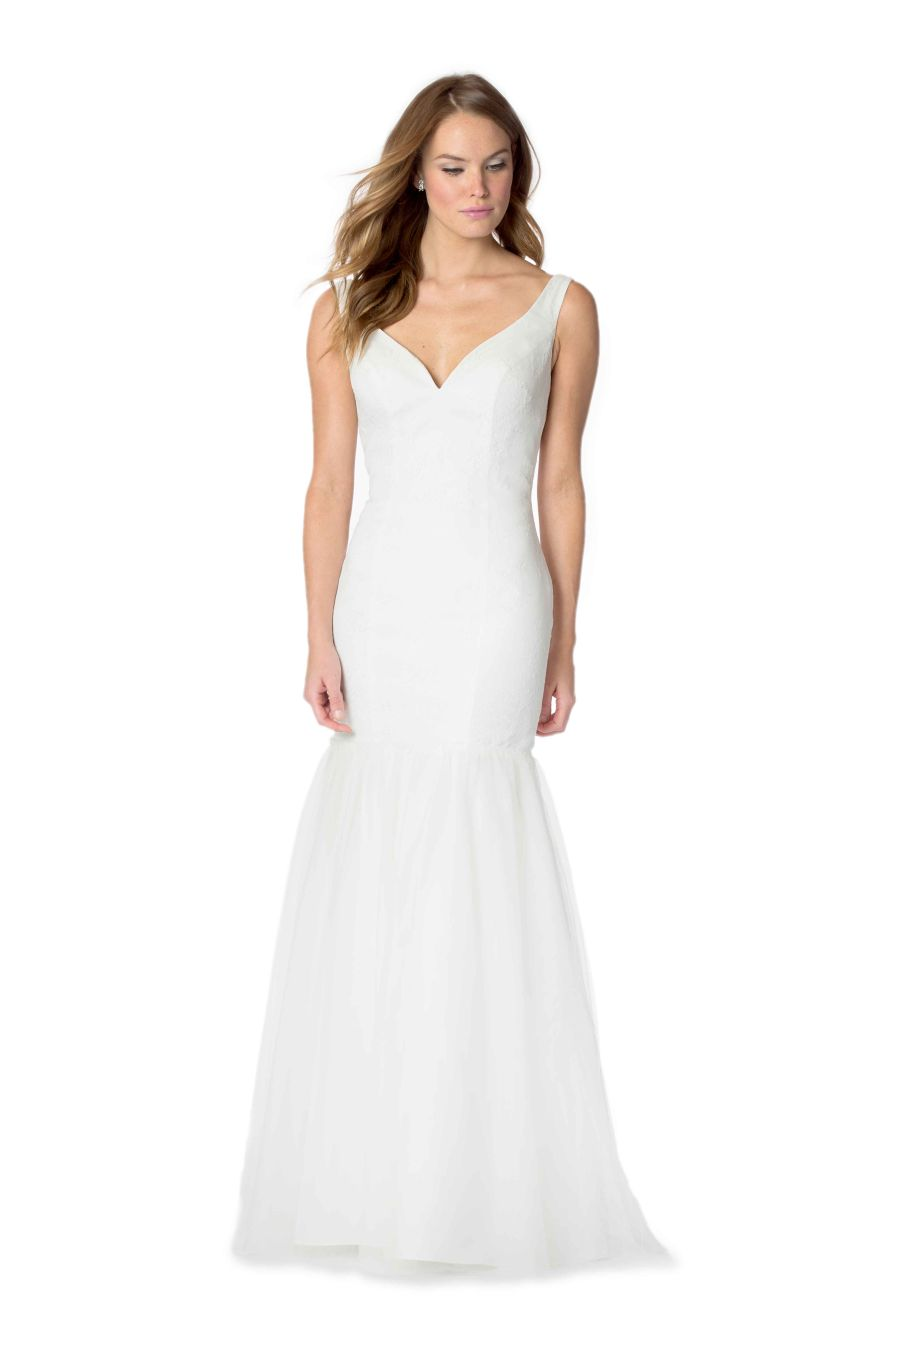 Bari jay whites 2057 fitted lace mermaid wedding dress for Immediate resource wedding dresses